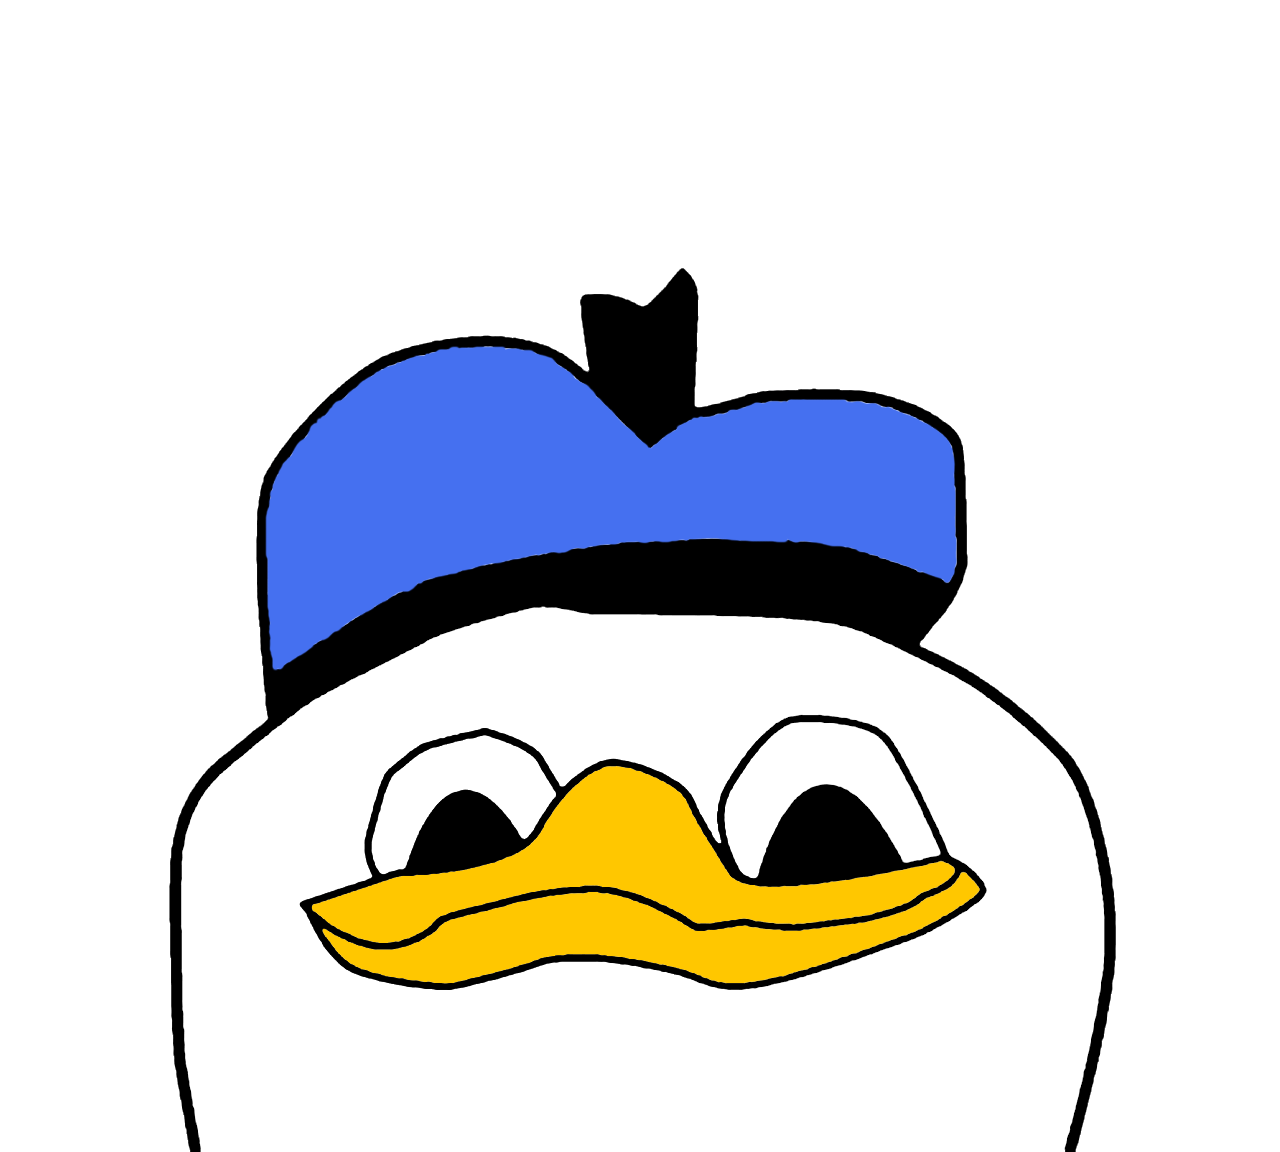 Dolan duck spiderman - photo#23